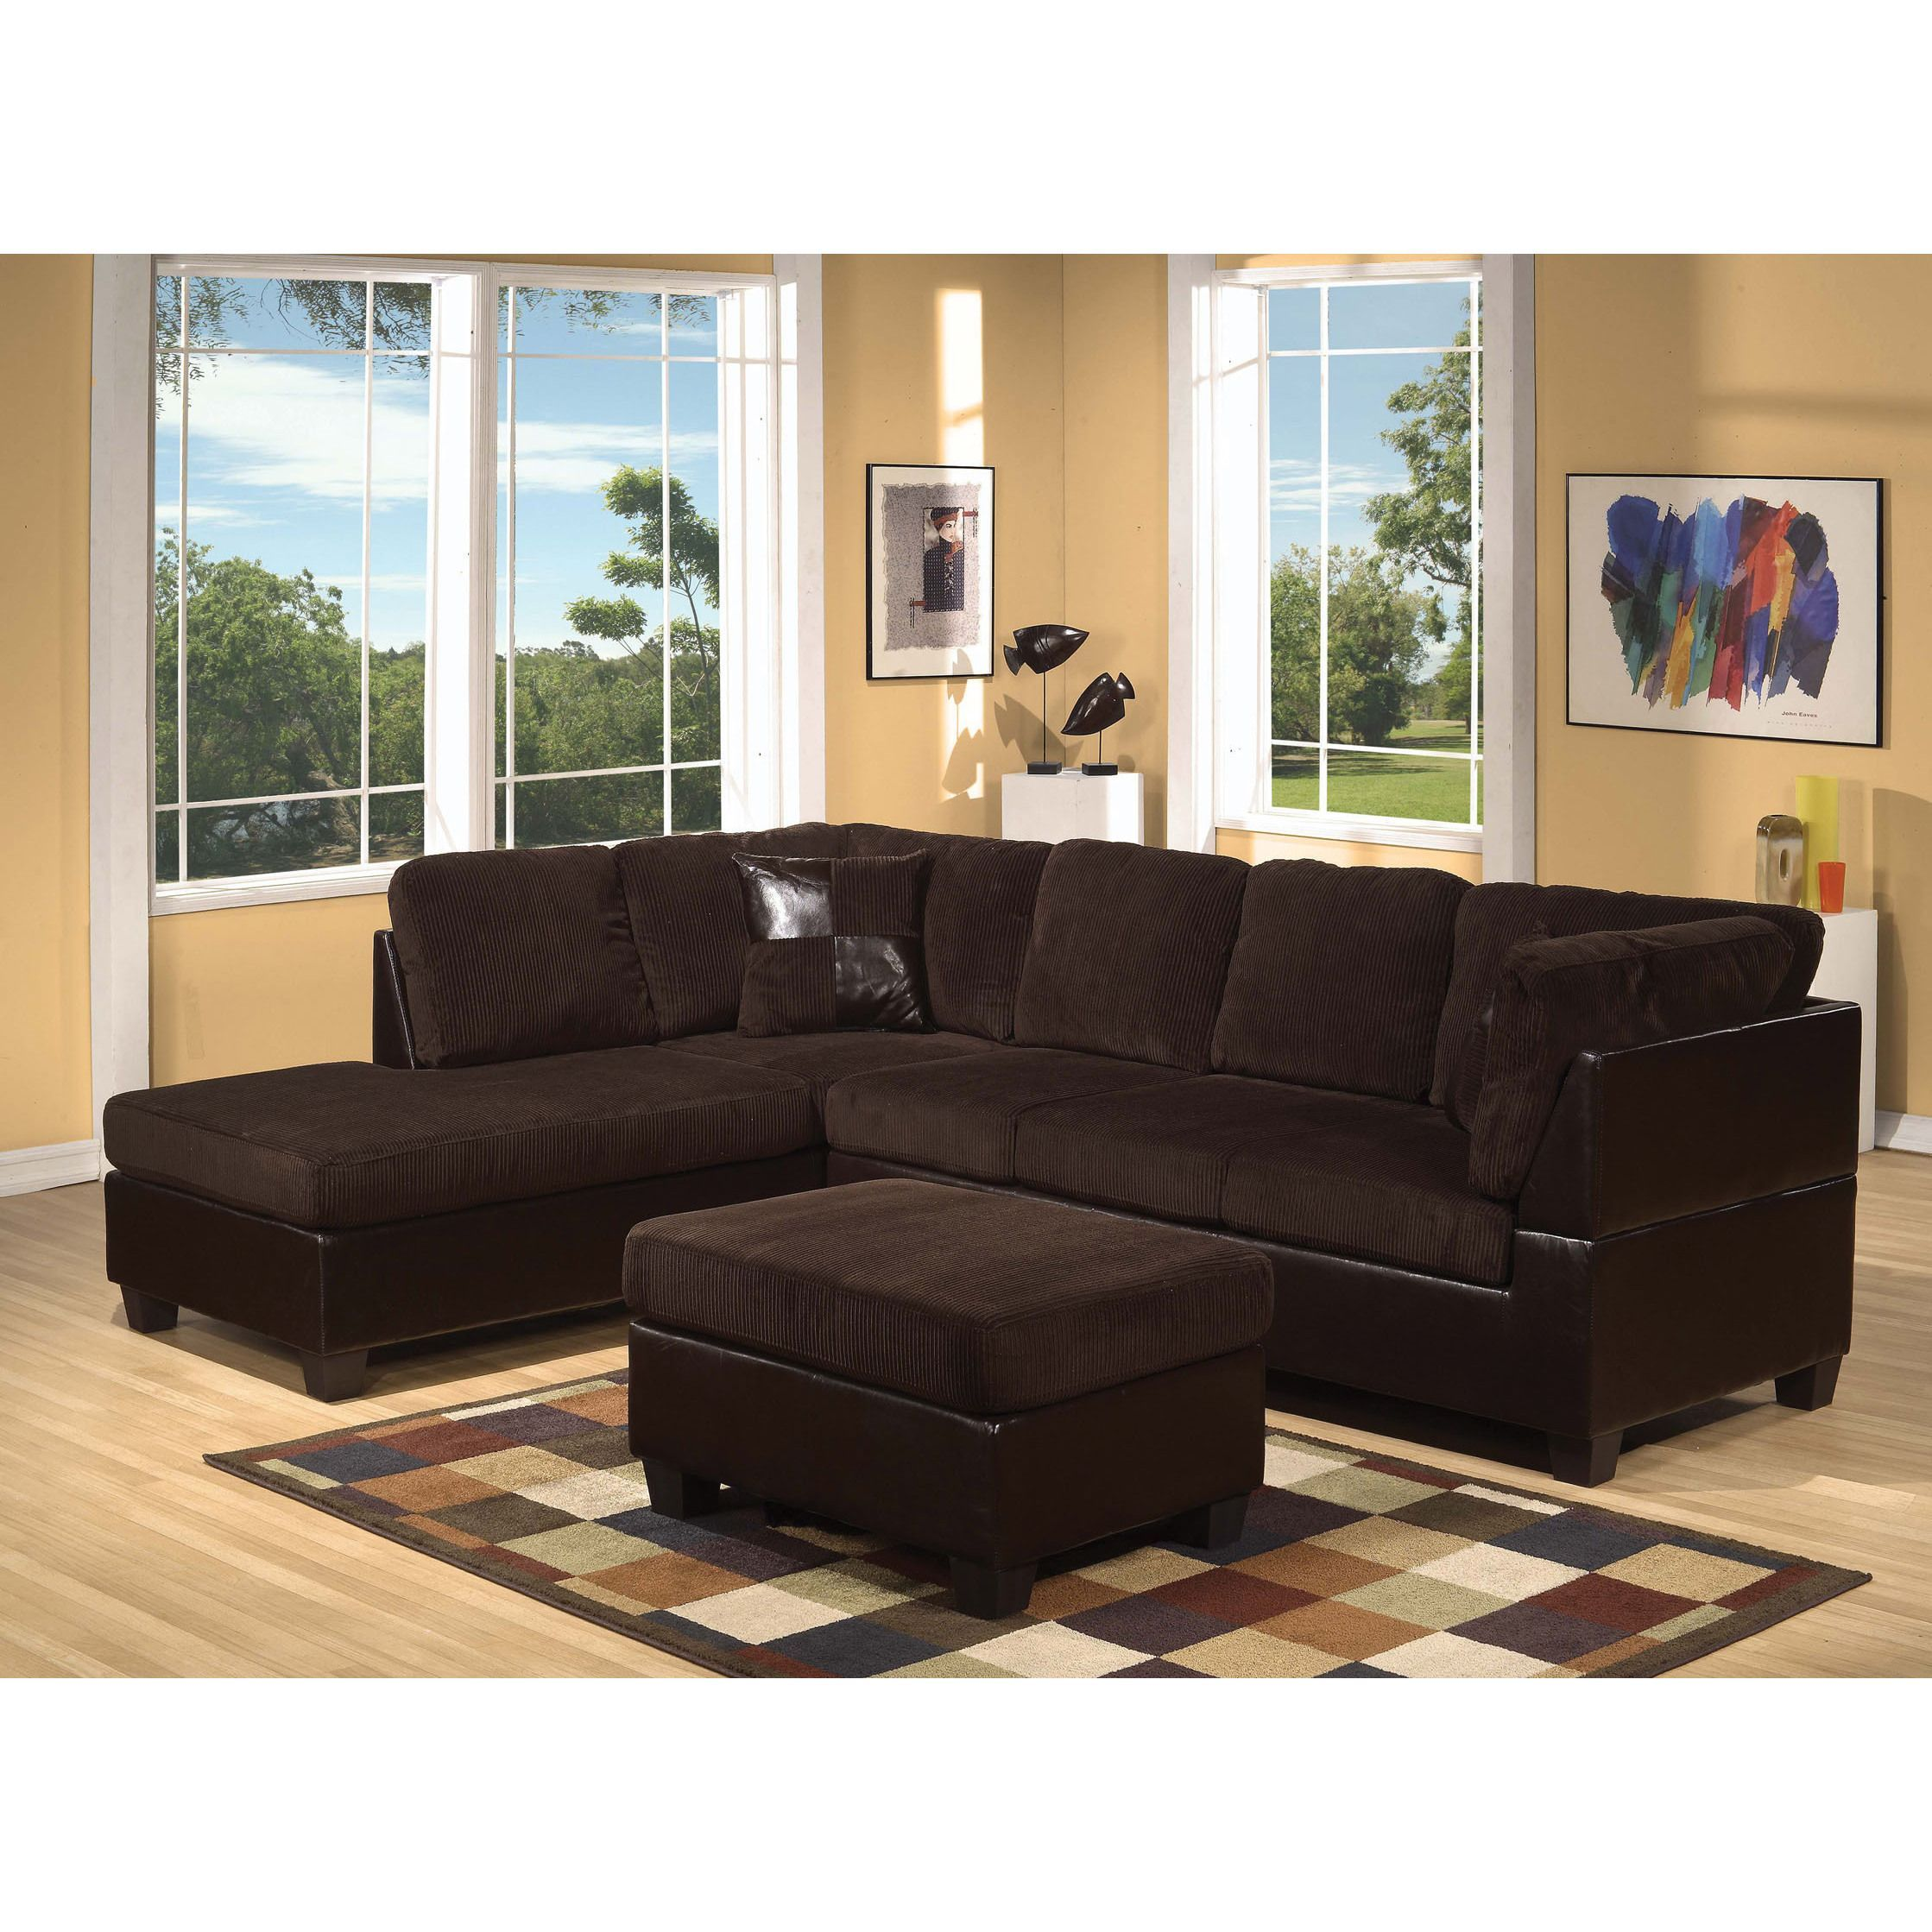 Connell Corduroy Espresso Sectional Sofa by Acme